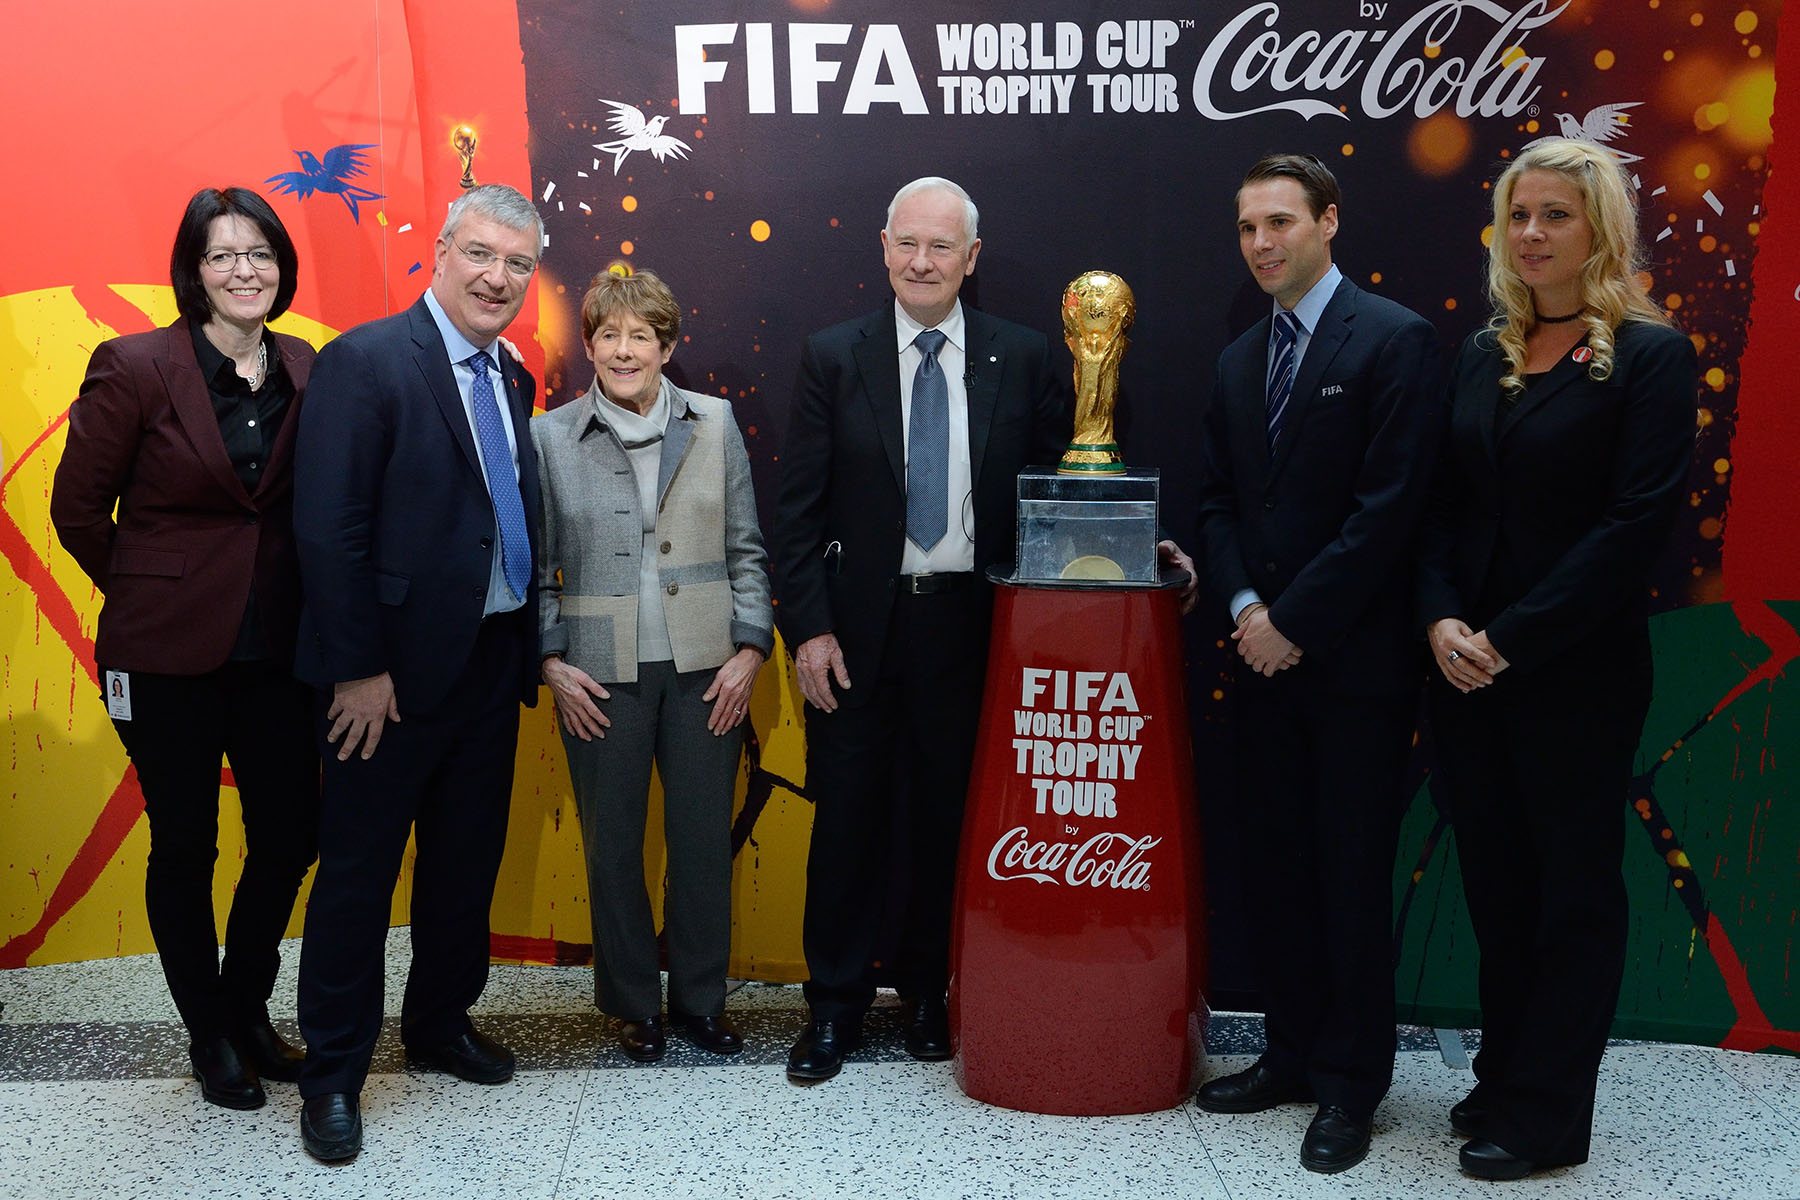 Their Excellencies are pictured with (from left to right): Heather Conway, CBC Executive Vice-President of English Services, Nicola Kettlitz, President, Canada Business Unit of the Coca-Cola Company, and FIFA representatives.